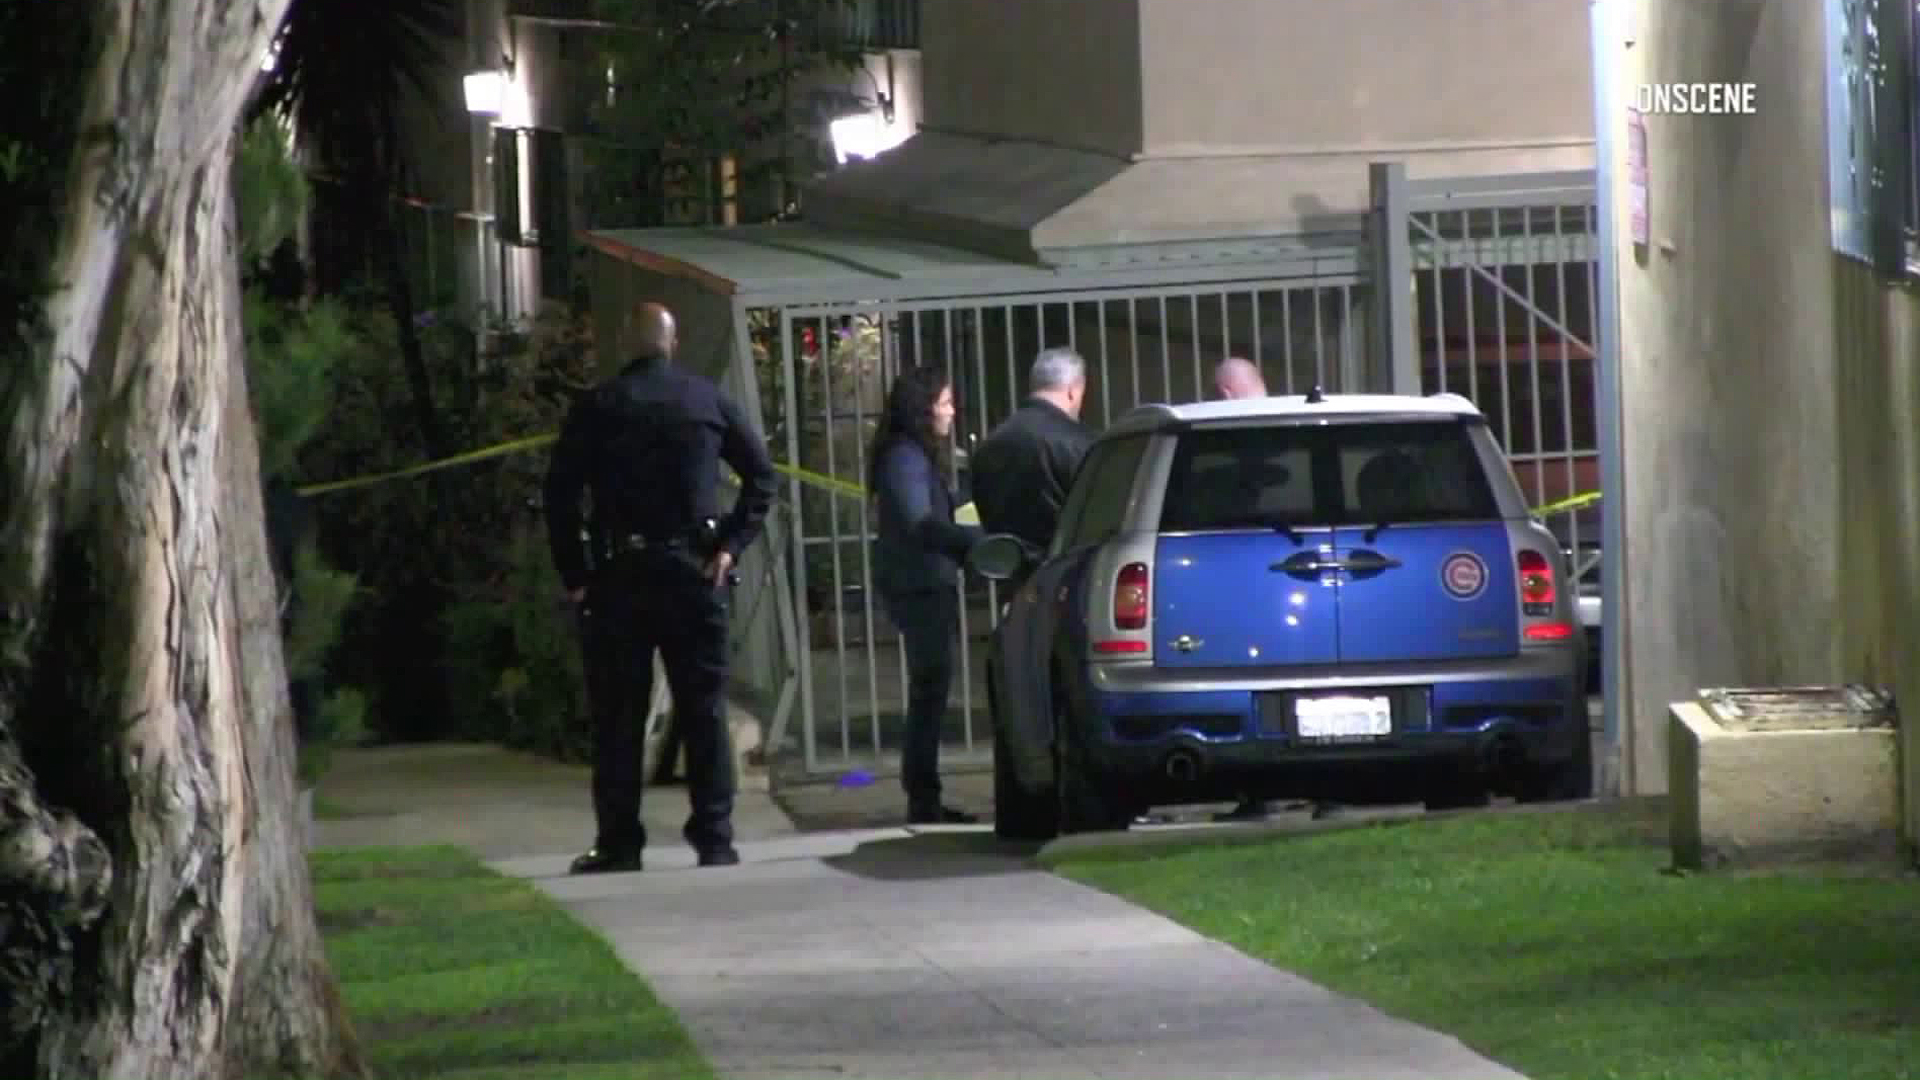 Police investigate a fatal stabbing in Baldwin Hills on Nov. 22, 2018. (Credit: OnScene)